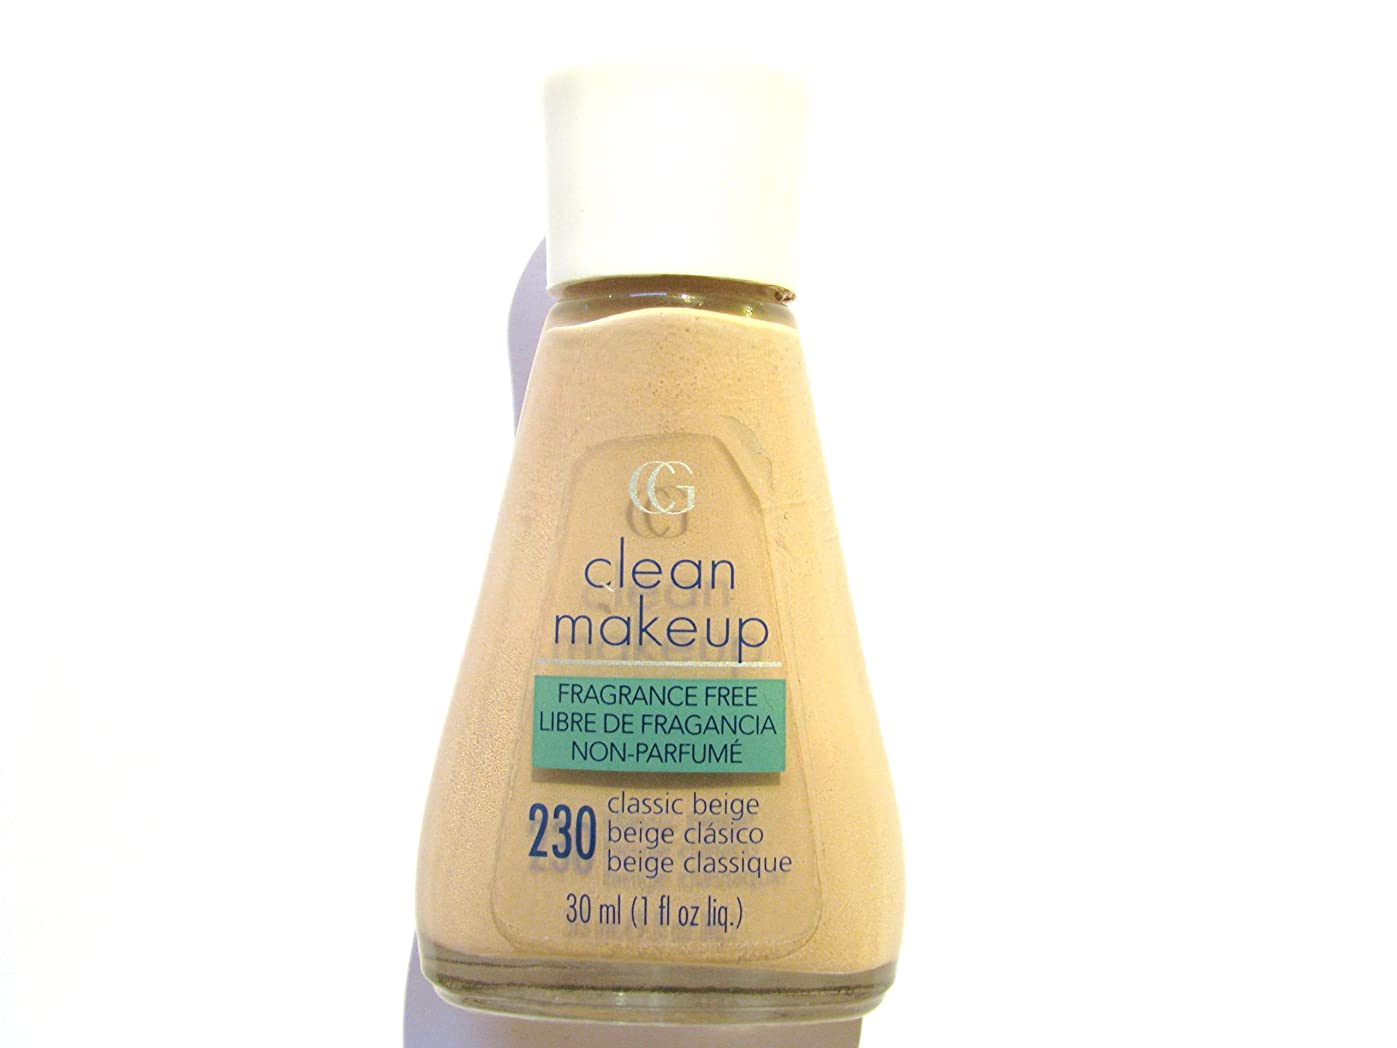 れるそれからお別れCOVERGIRL CLEAN FRAGANCE FREE MAKEUP #230 CLASSIC BEIGE